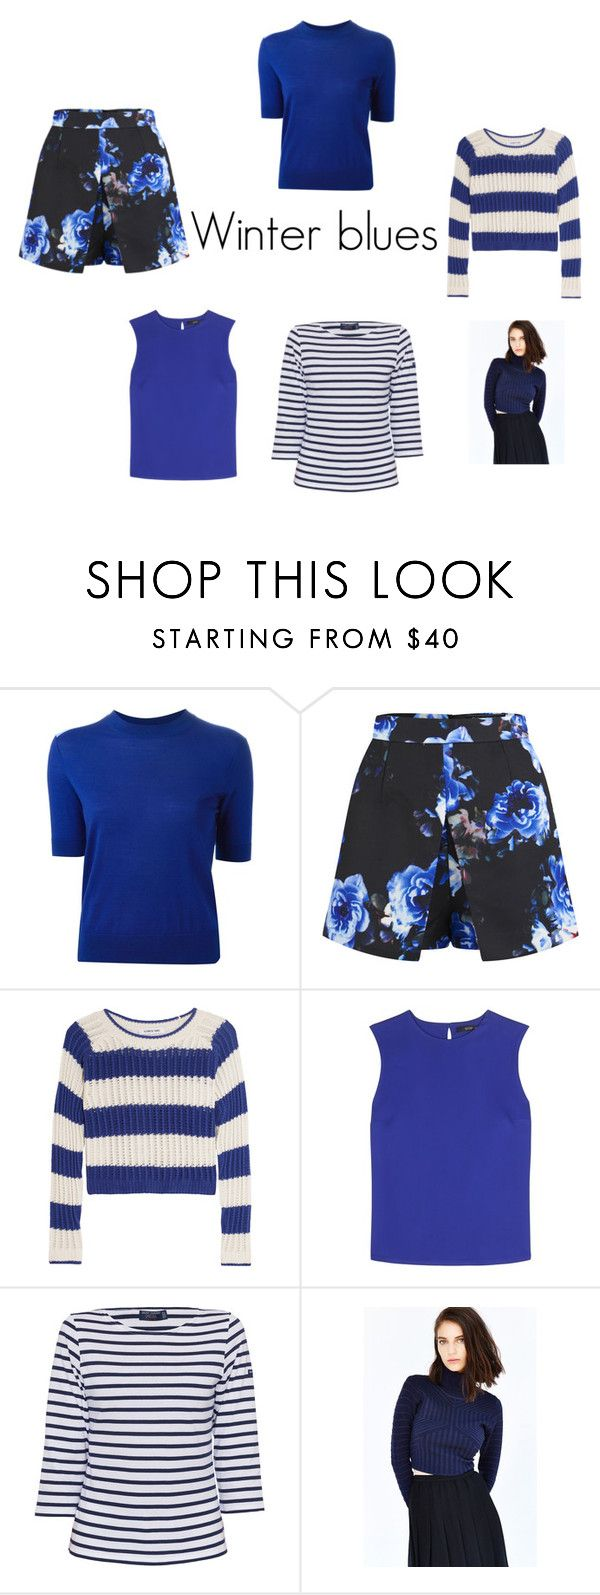 Winter blues by fargeporten on Polyvore featuring Saint James, Marc by Marc Jacobs, Etro, Elizabeth and James, Glamorous and Girls On Film